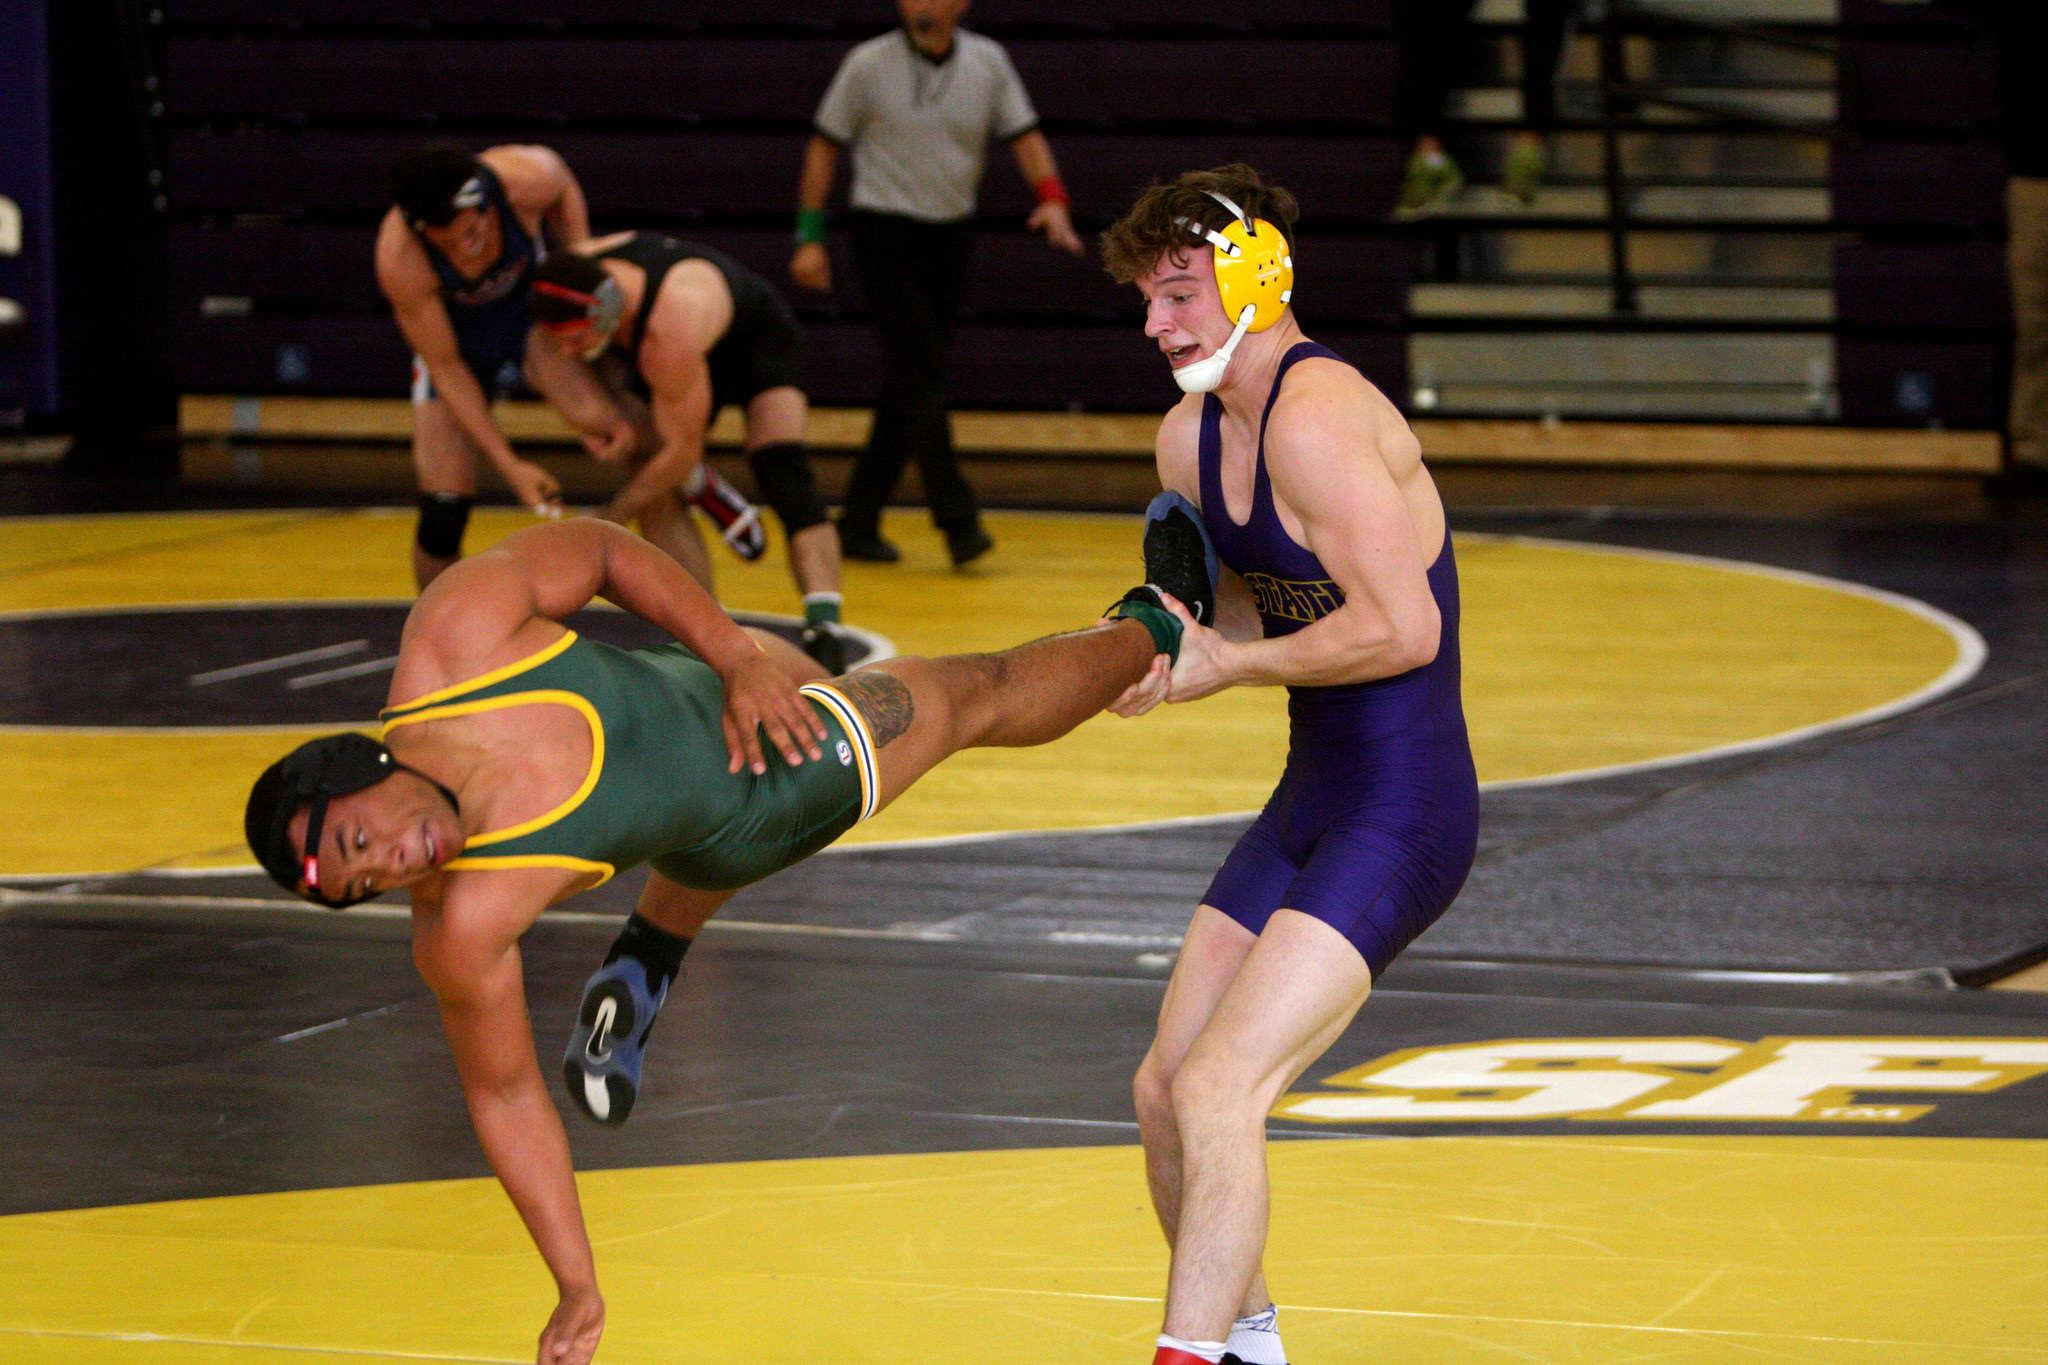 San Francisco State Gator Calvin Nicholls matches North Dakota State Thundar Joseph Garner during the California Collegiate Open at the San Francisco State Gymnasium on January 31 2014.